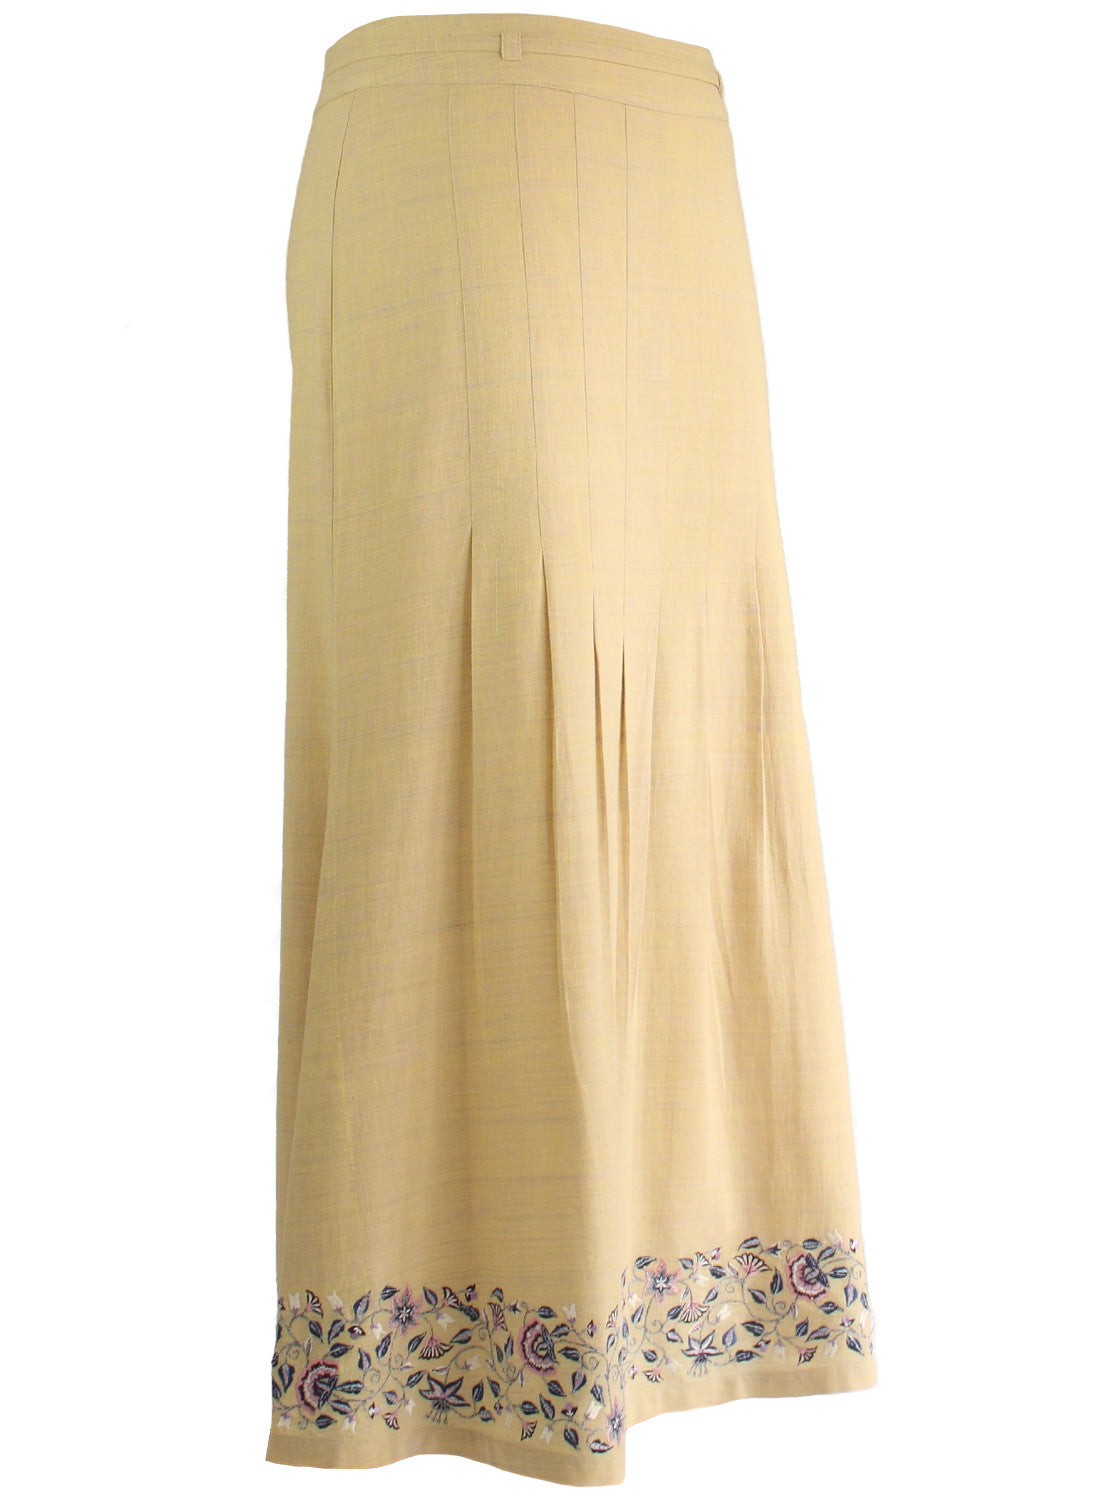 Ankle length Skirt in Beige Khadi with Floral Embroidery - MINC ecofashion